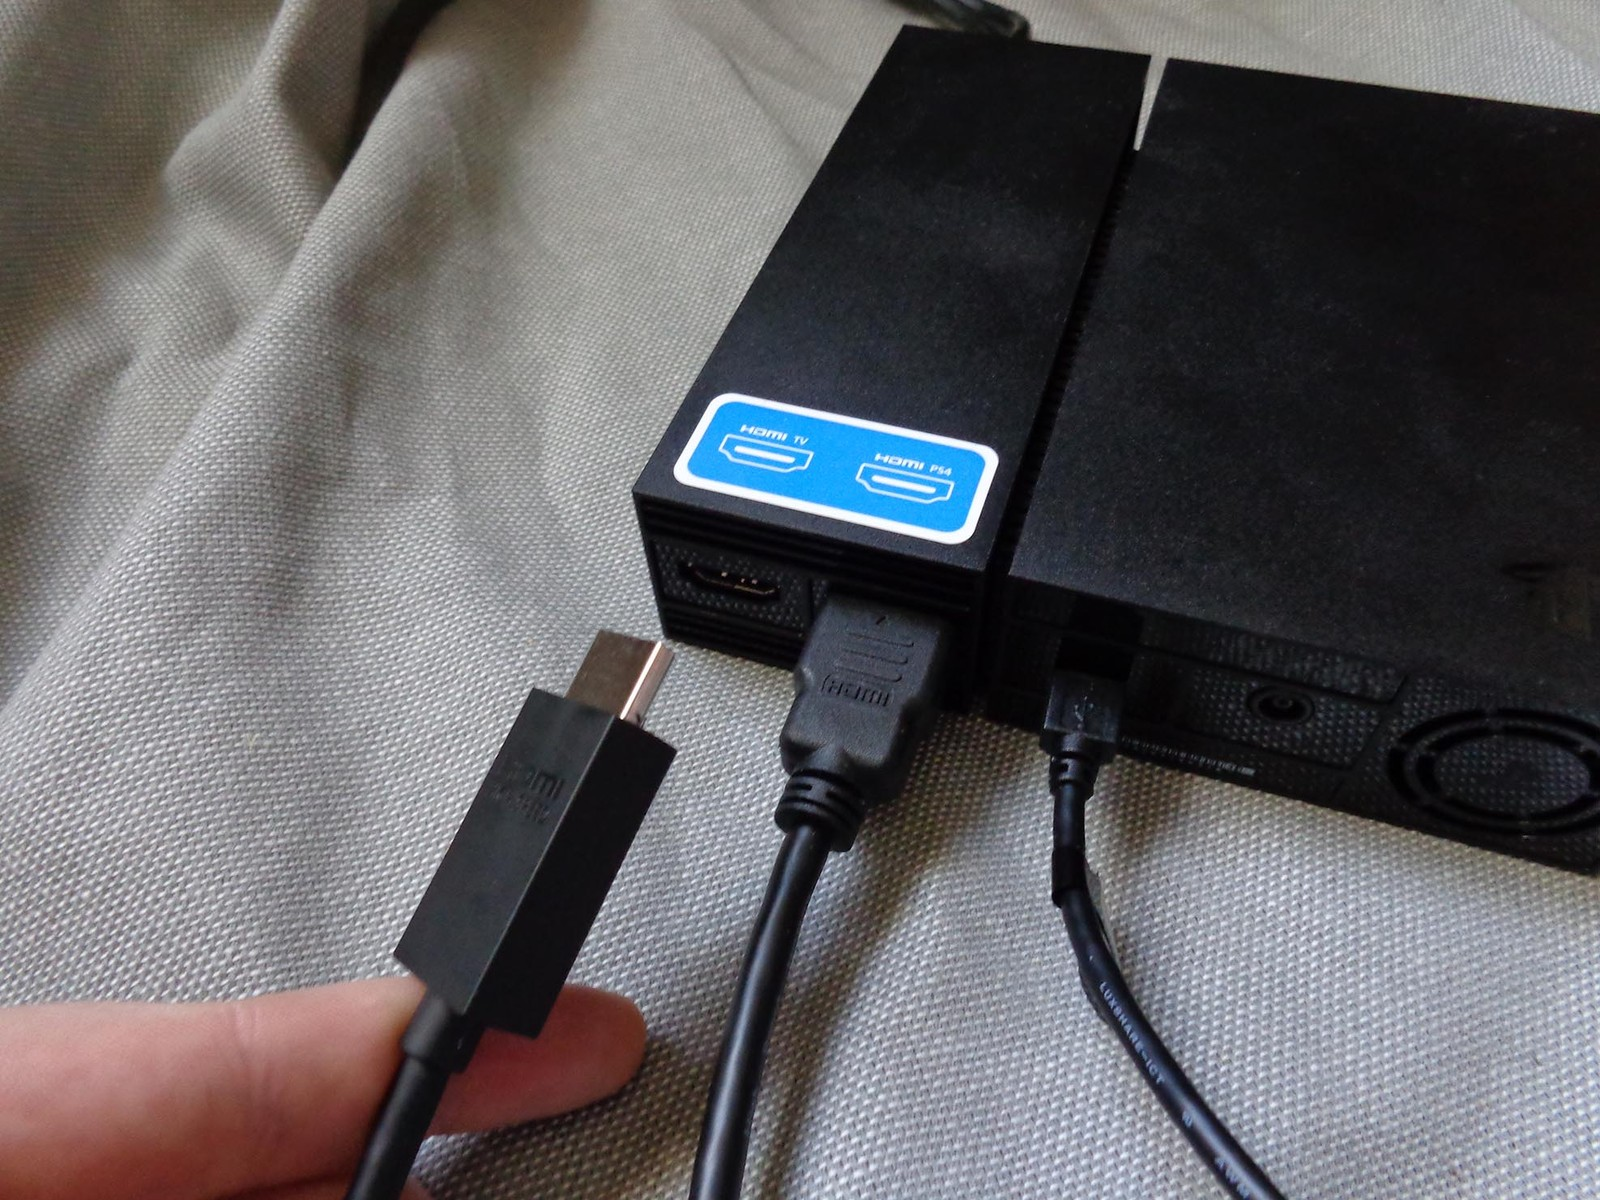 Swap out the HDMI cables one at a time.